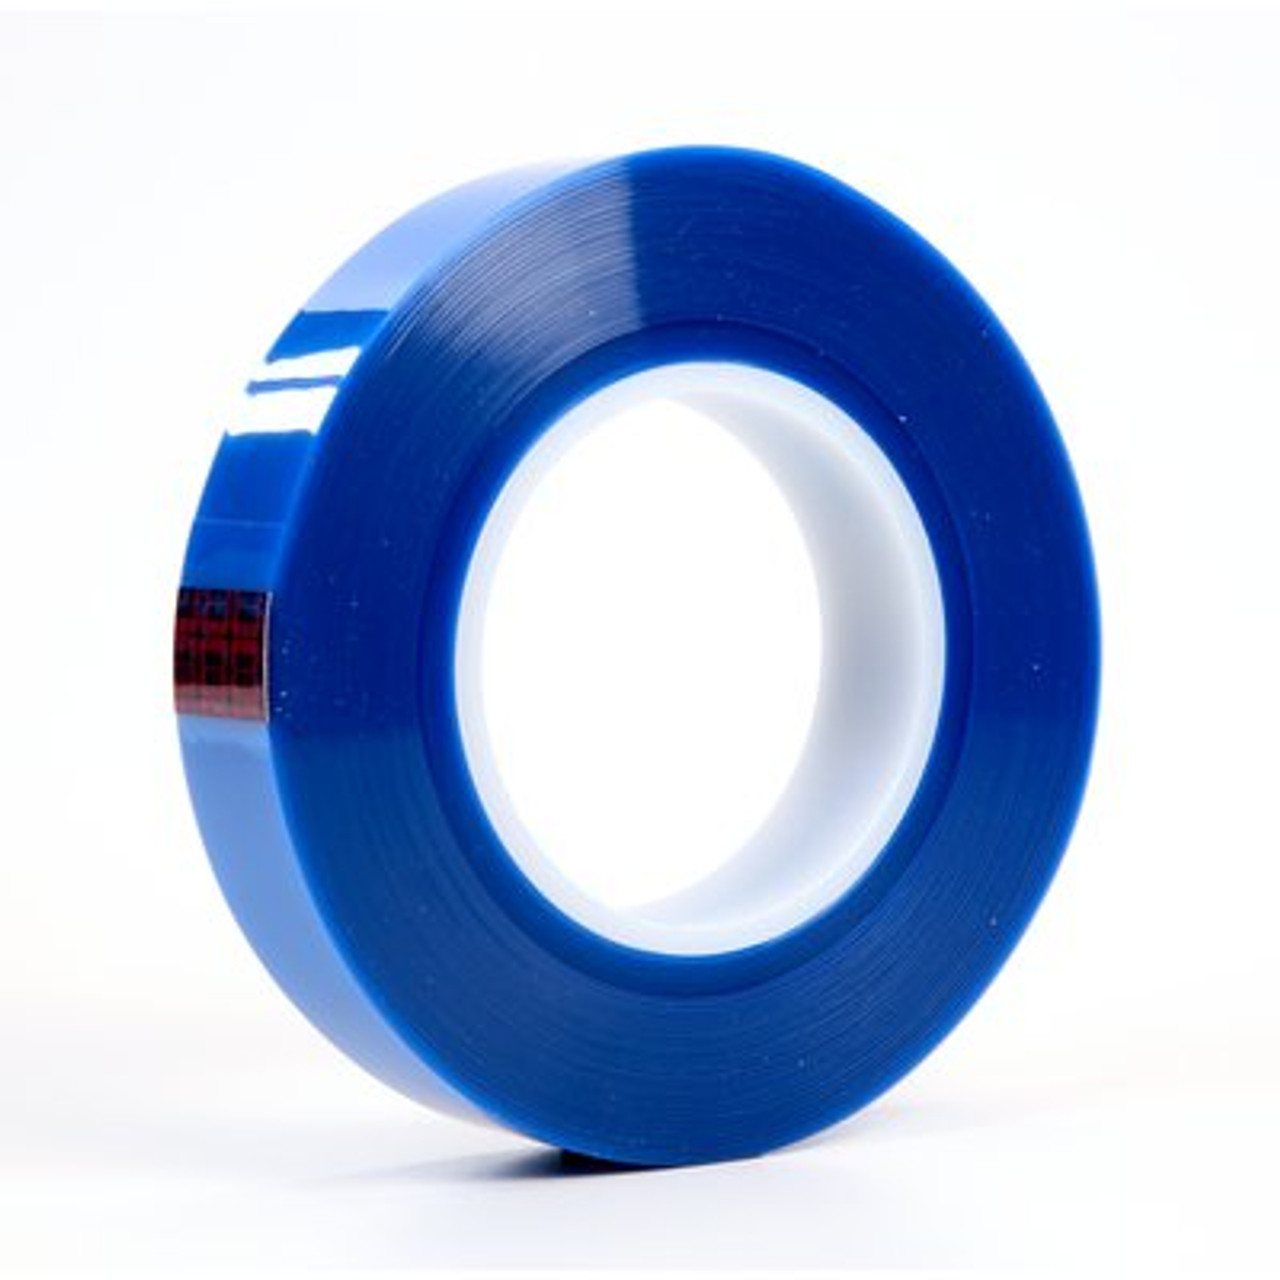 3M™ Polyester Tape 8905, Blue, 1 in x 72 yd, 6.4 mil